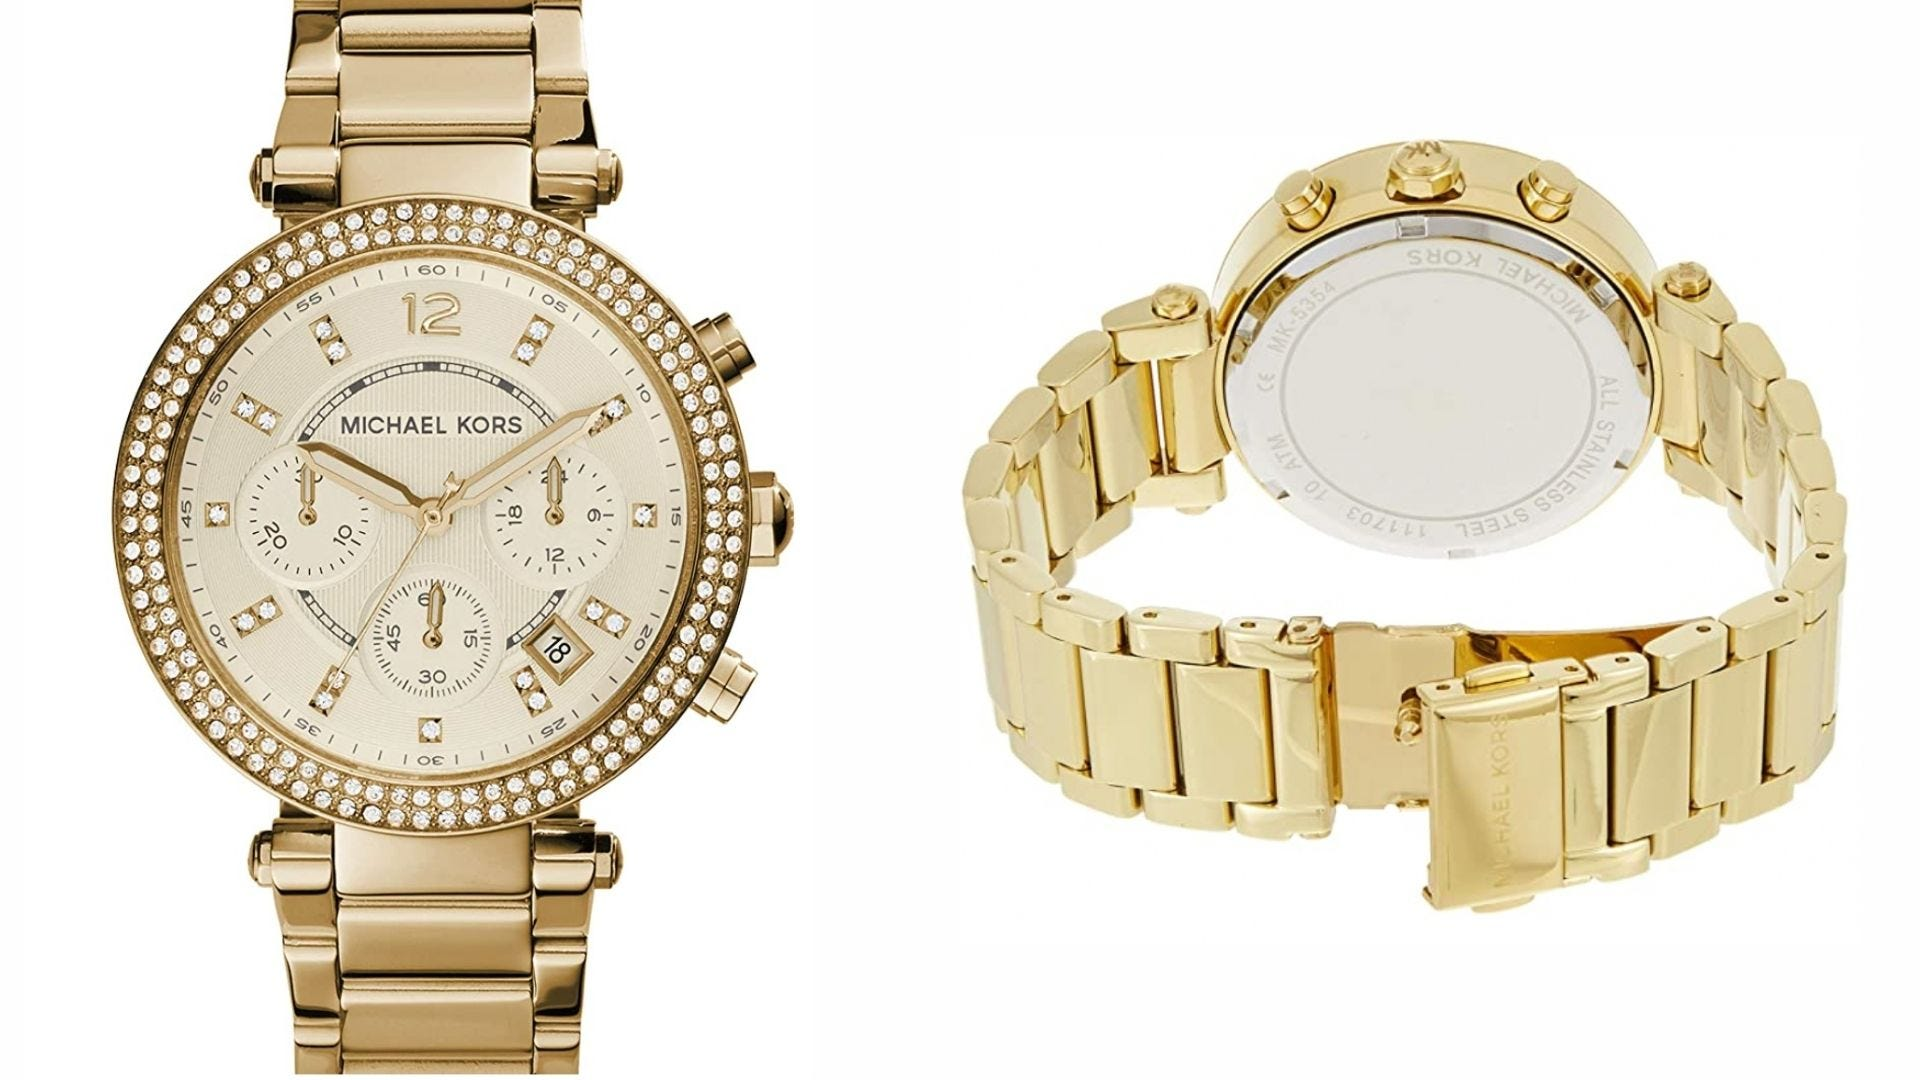 the face and the band of a gold Michael Kors analog watch